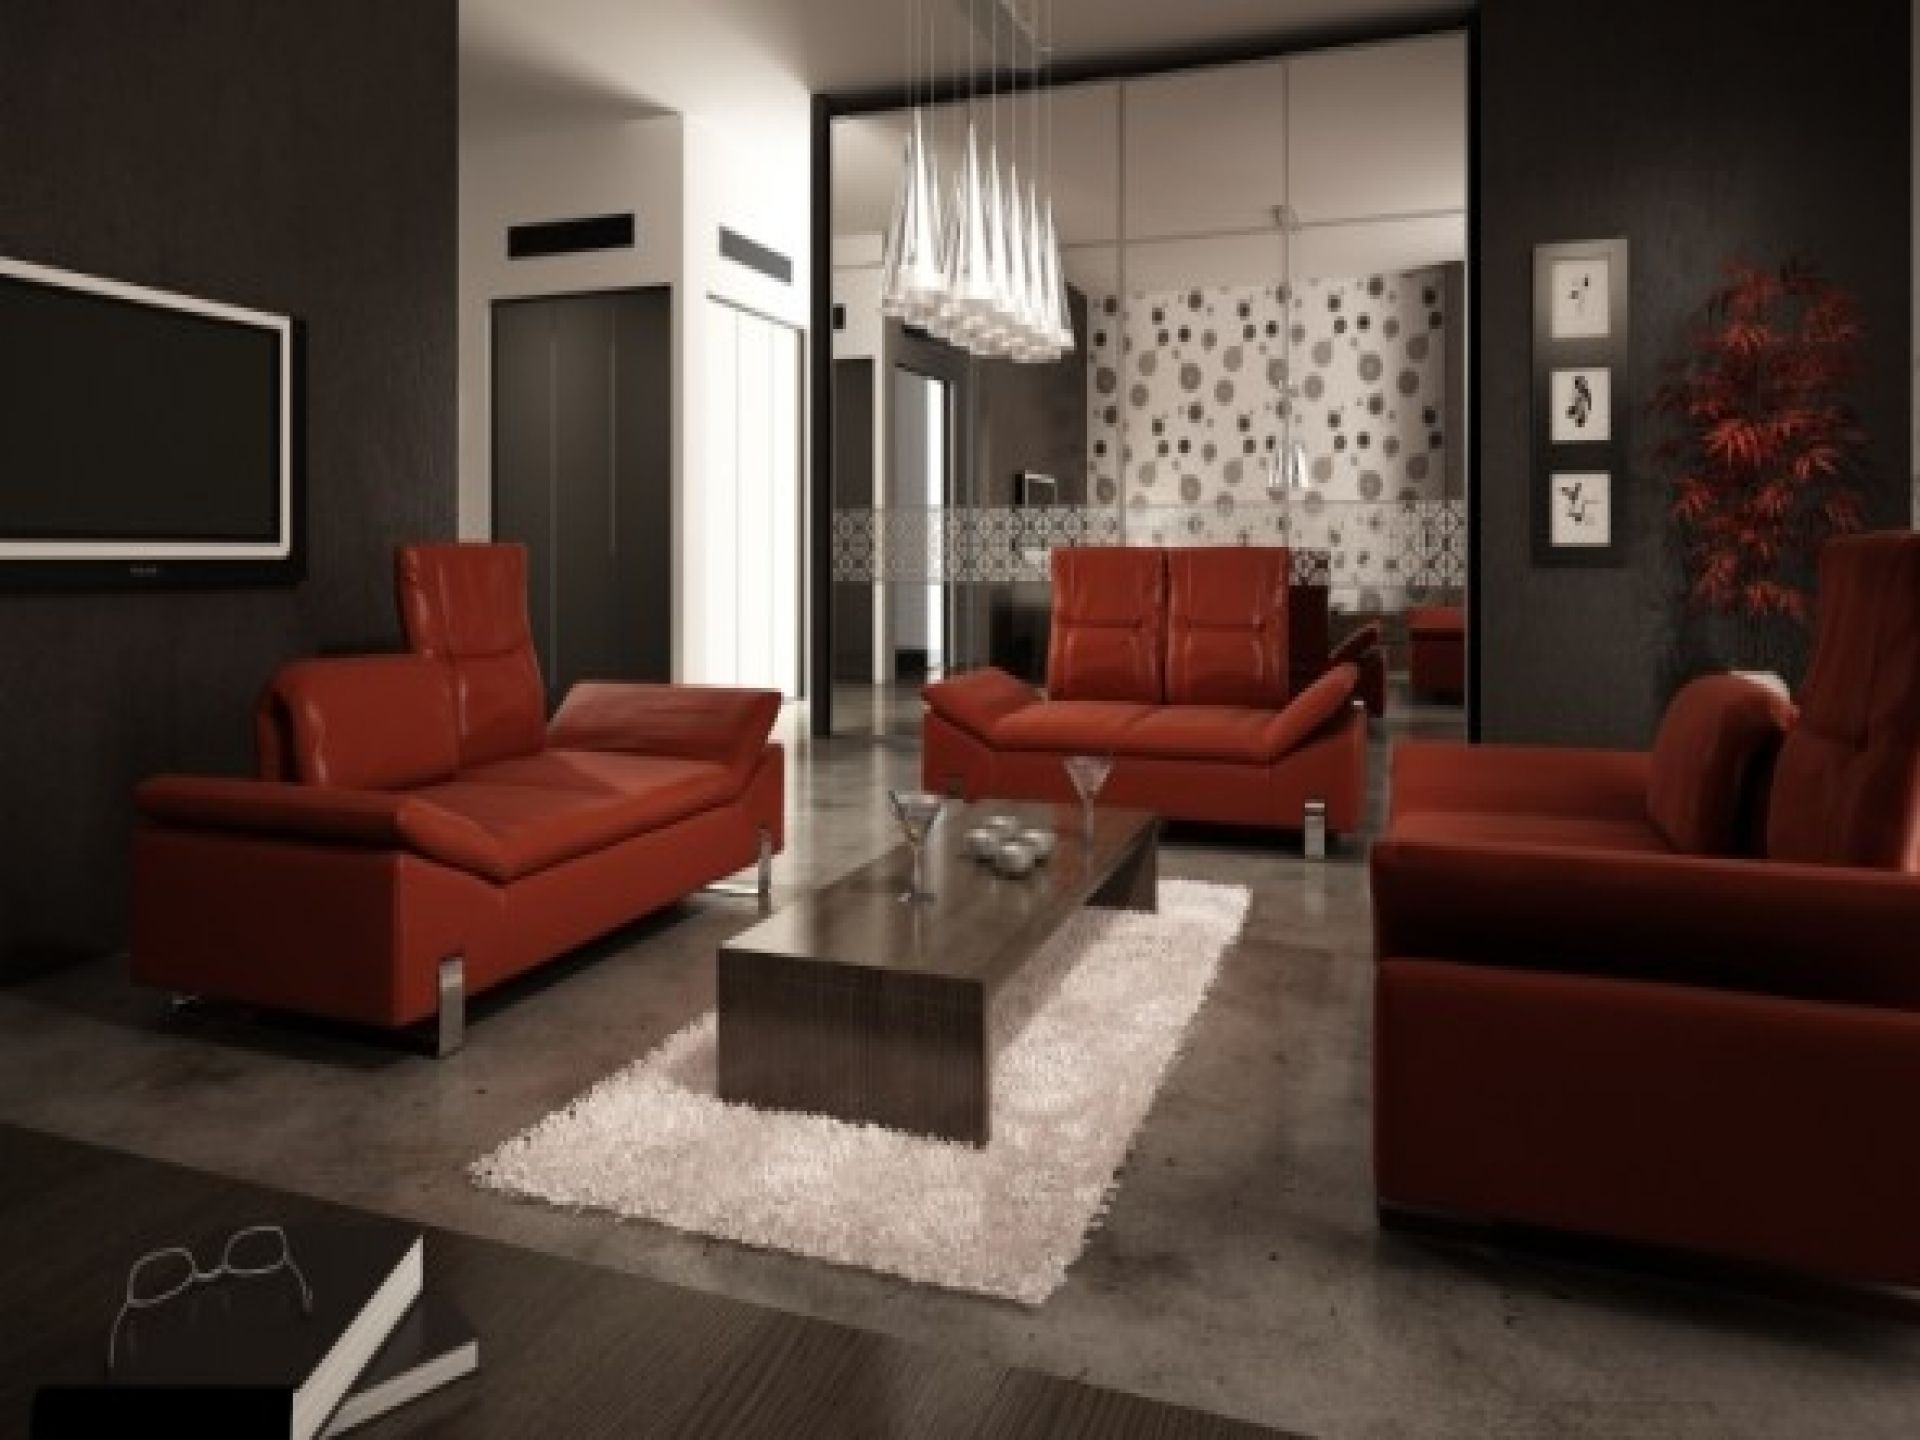 Zen Living Room Furniture Red Leather Sofa Living Room Ideas  Google Search  Joel's Apt